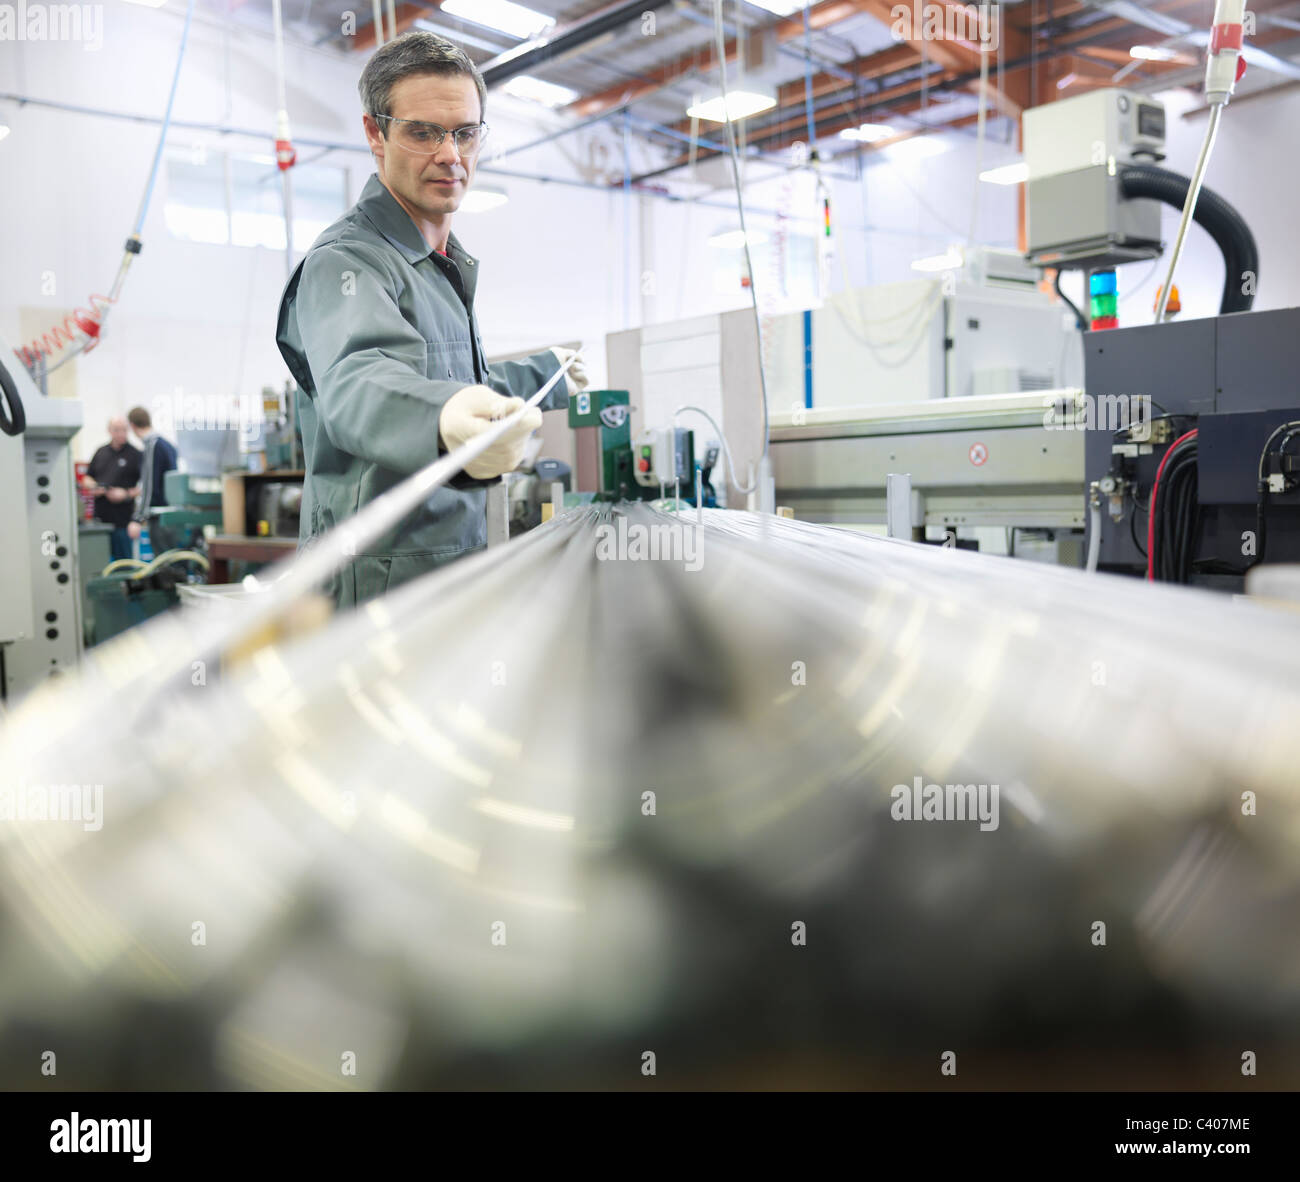 Engineer working with metal rods - Stock Image